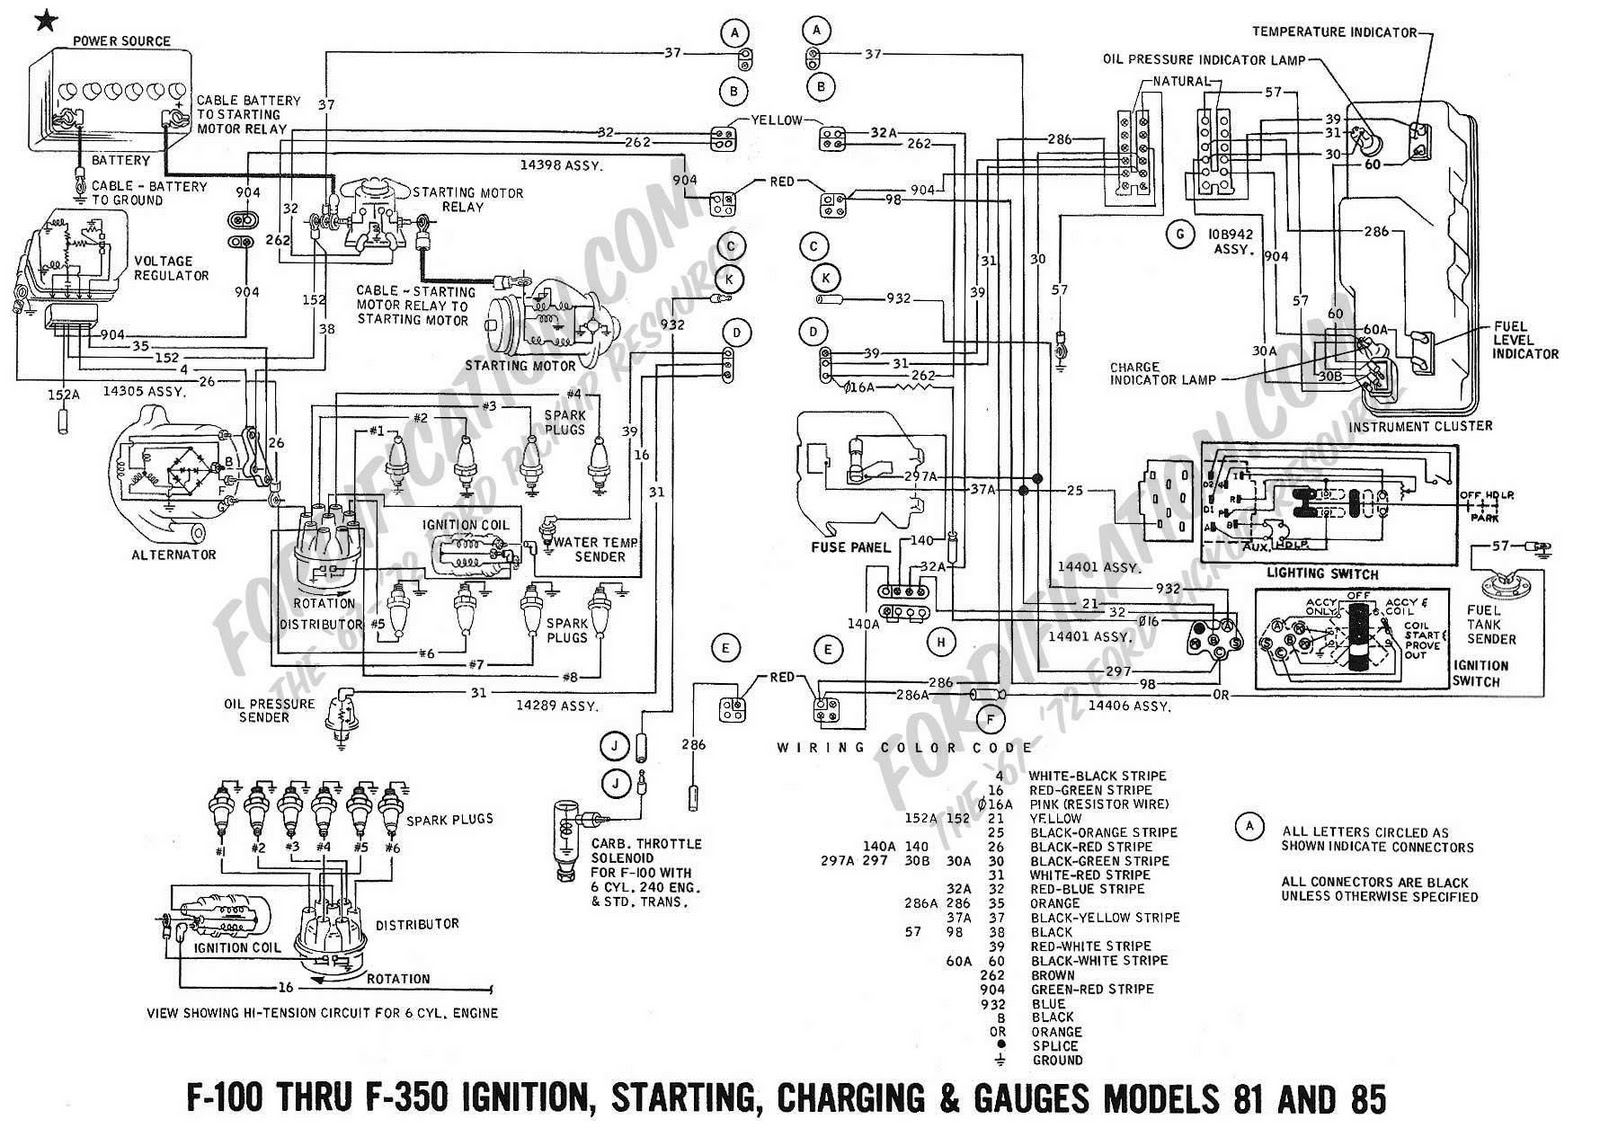 1969 Mustang Instrument Panel Diagram Wiring Schematic Bege Wiring Diagram